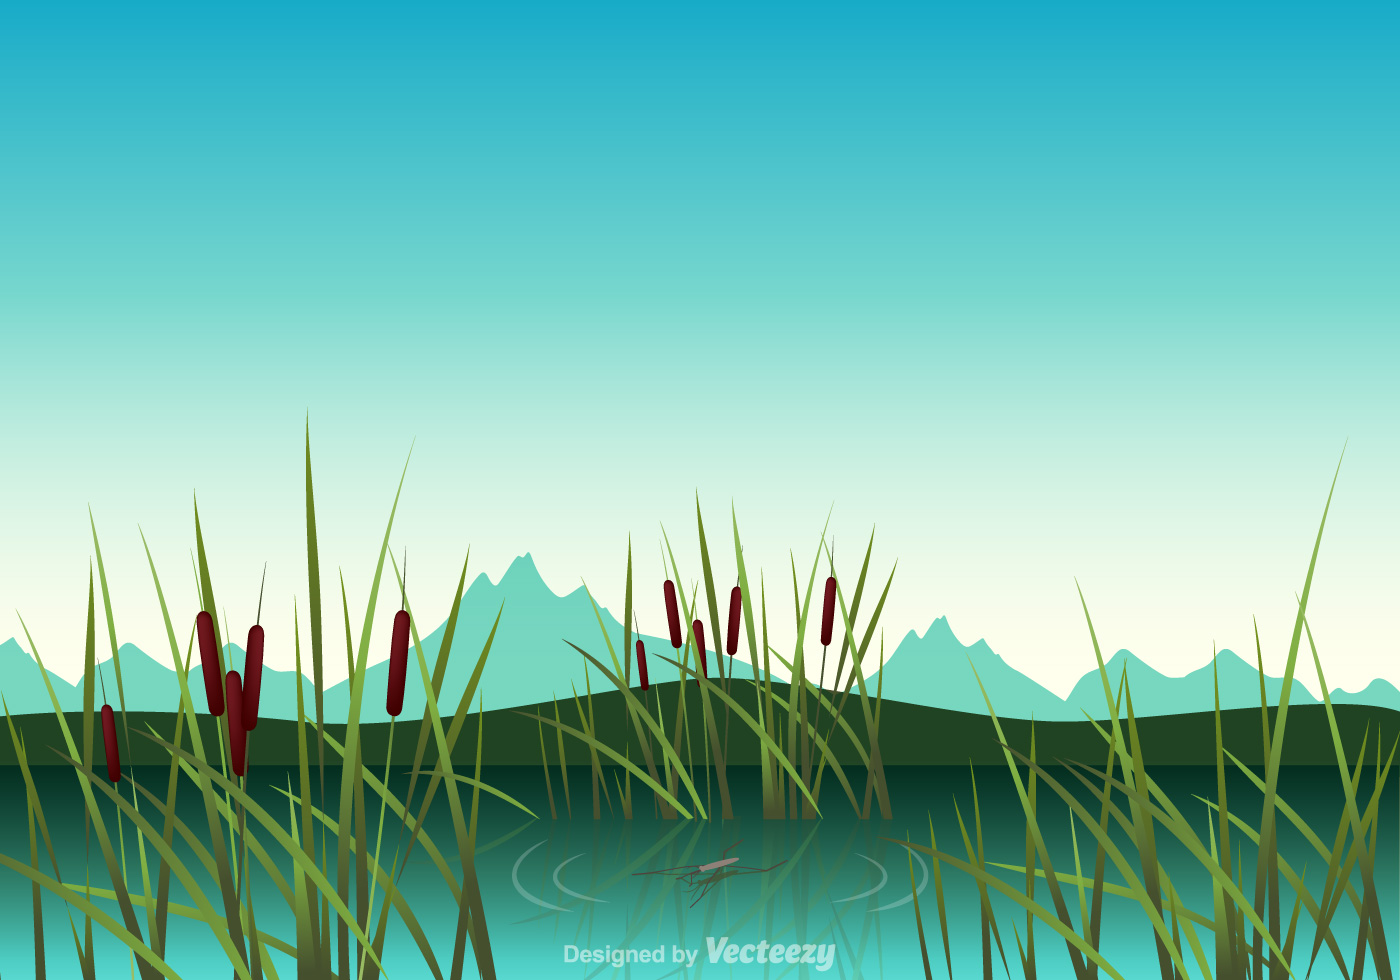 Free Swamp Vector Illustration - Download Free Vector Art, Stock ...